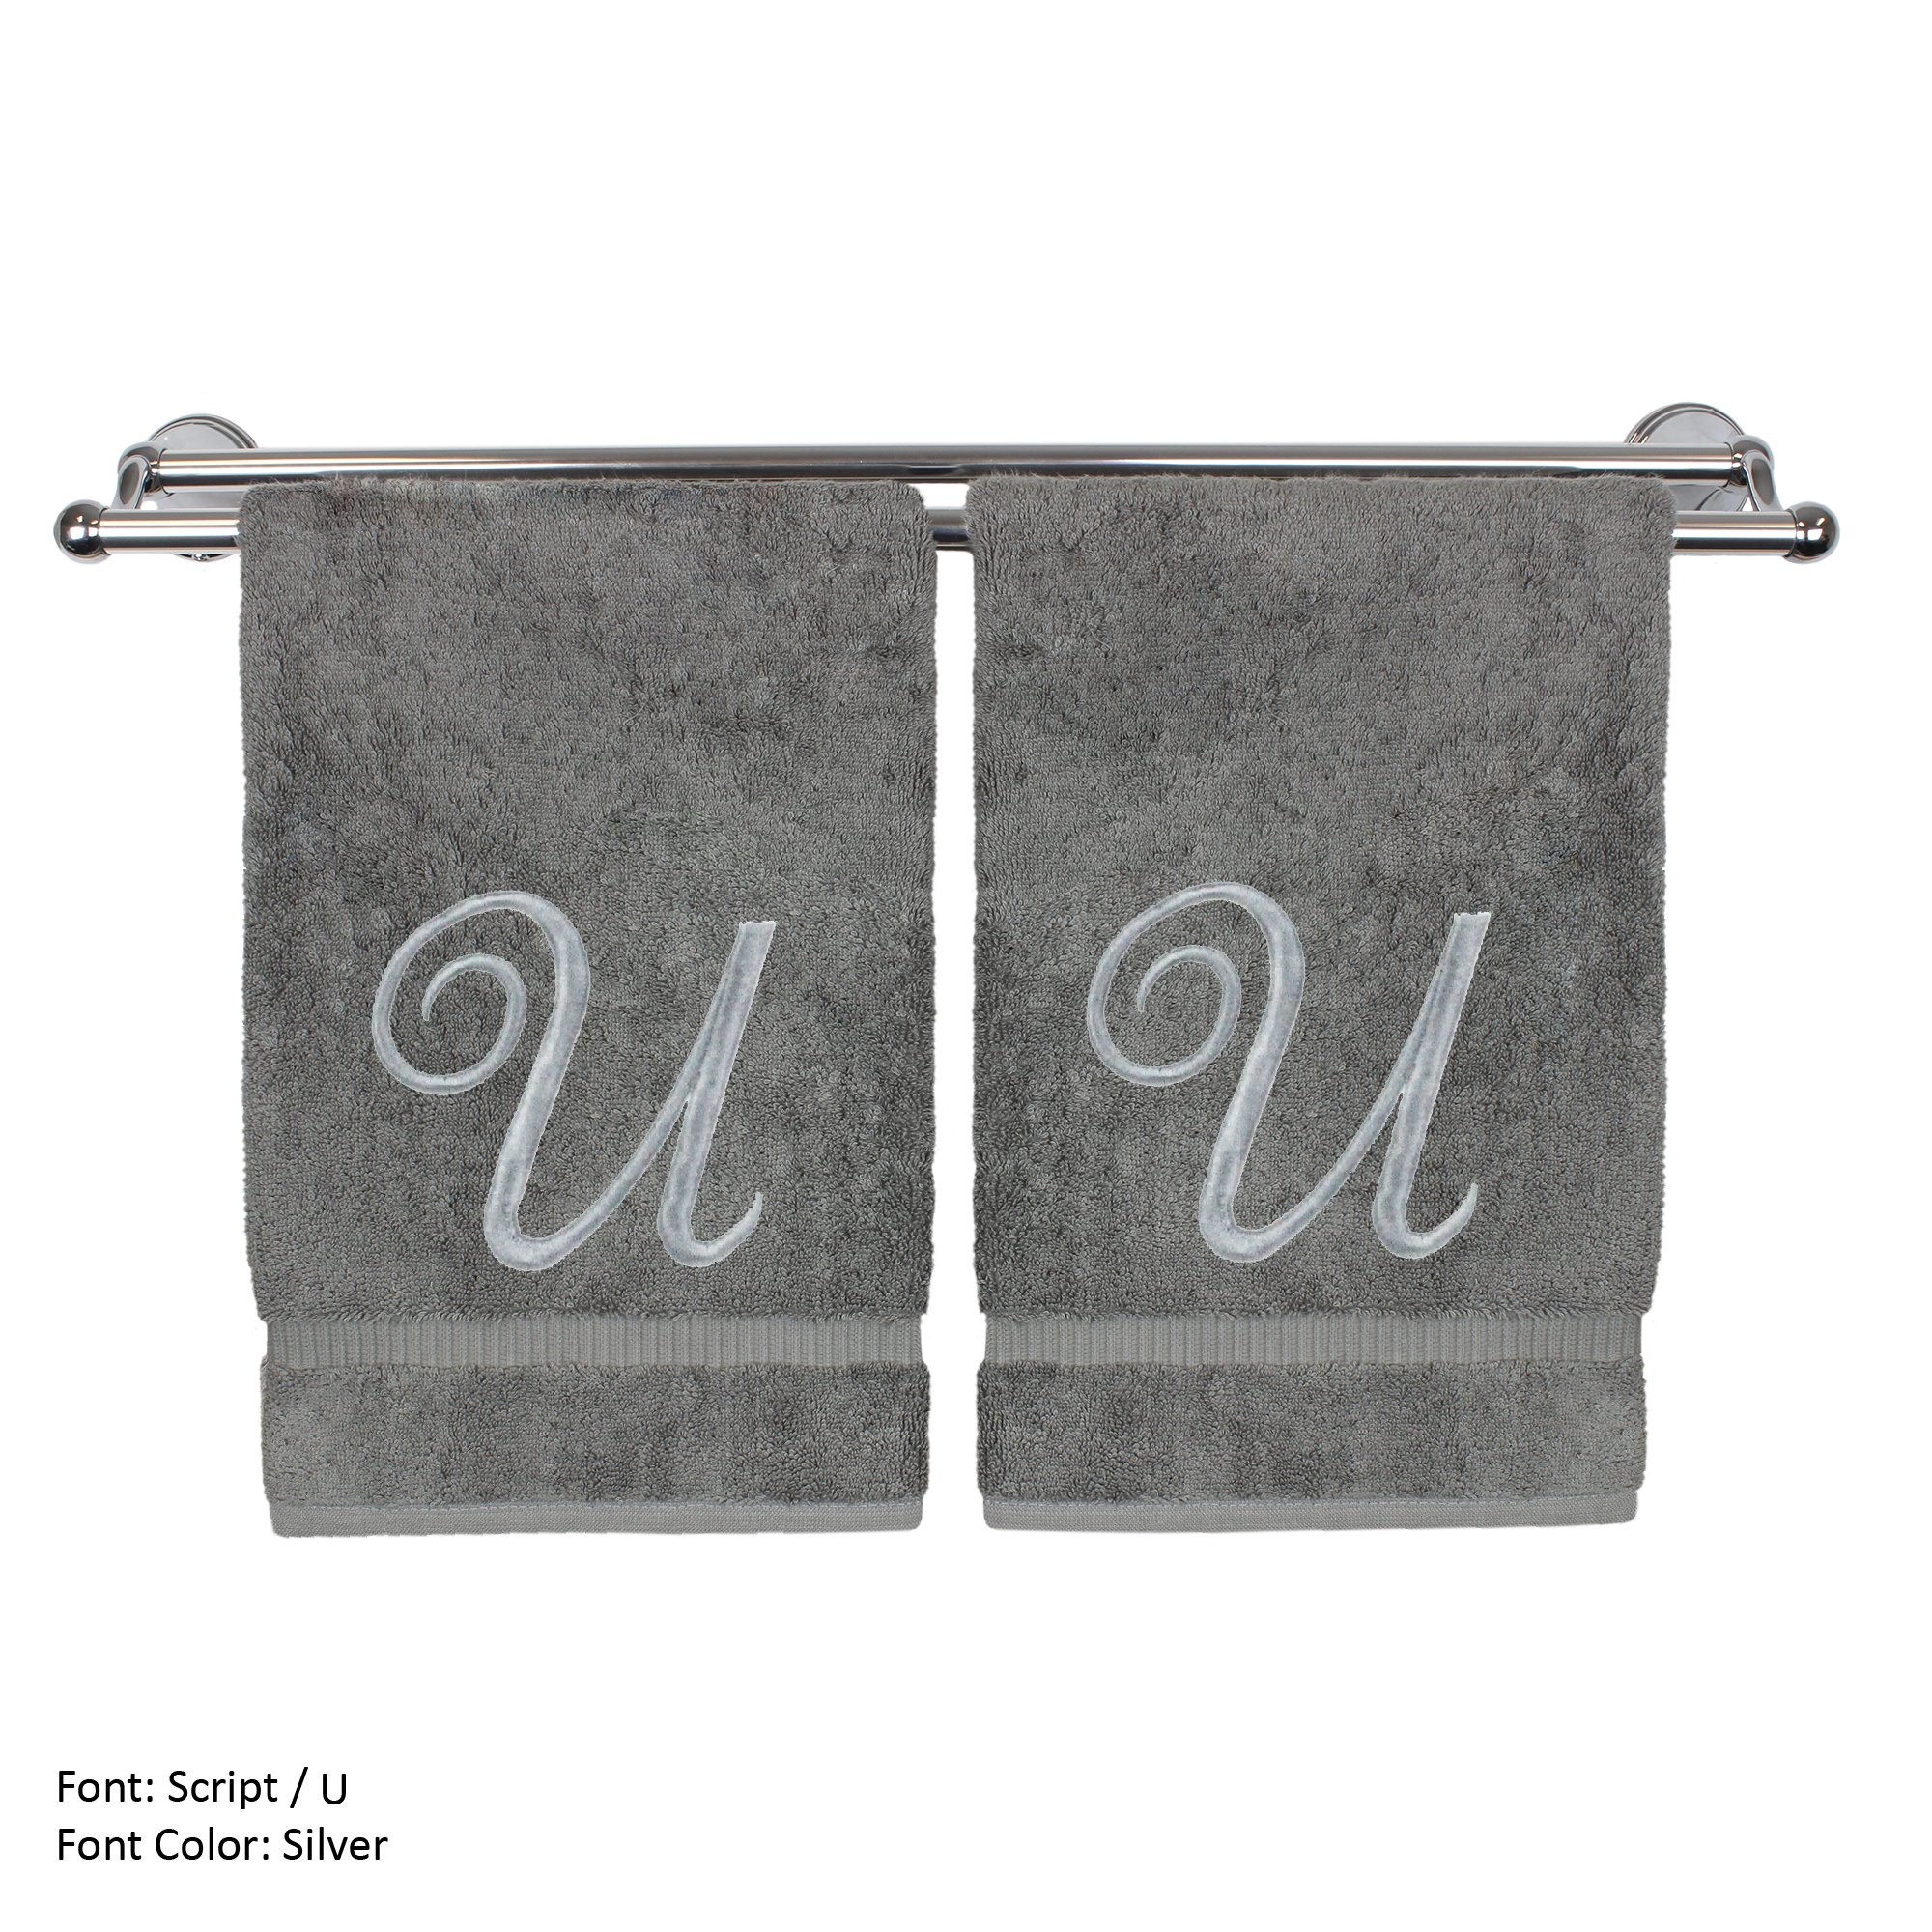 Monogrammed Hand Towel, Personalized Gift, 16 x 30 Inches - Set of 2 - Silver Embroidered Towel - Extra Absorbent 100% Turkish Cotton- Soft Terry Finish - For Bathroom, Kitchen and Spa- Script U Gray